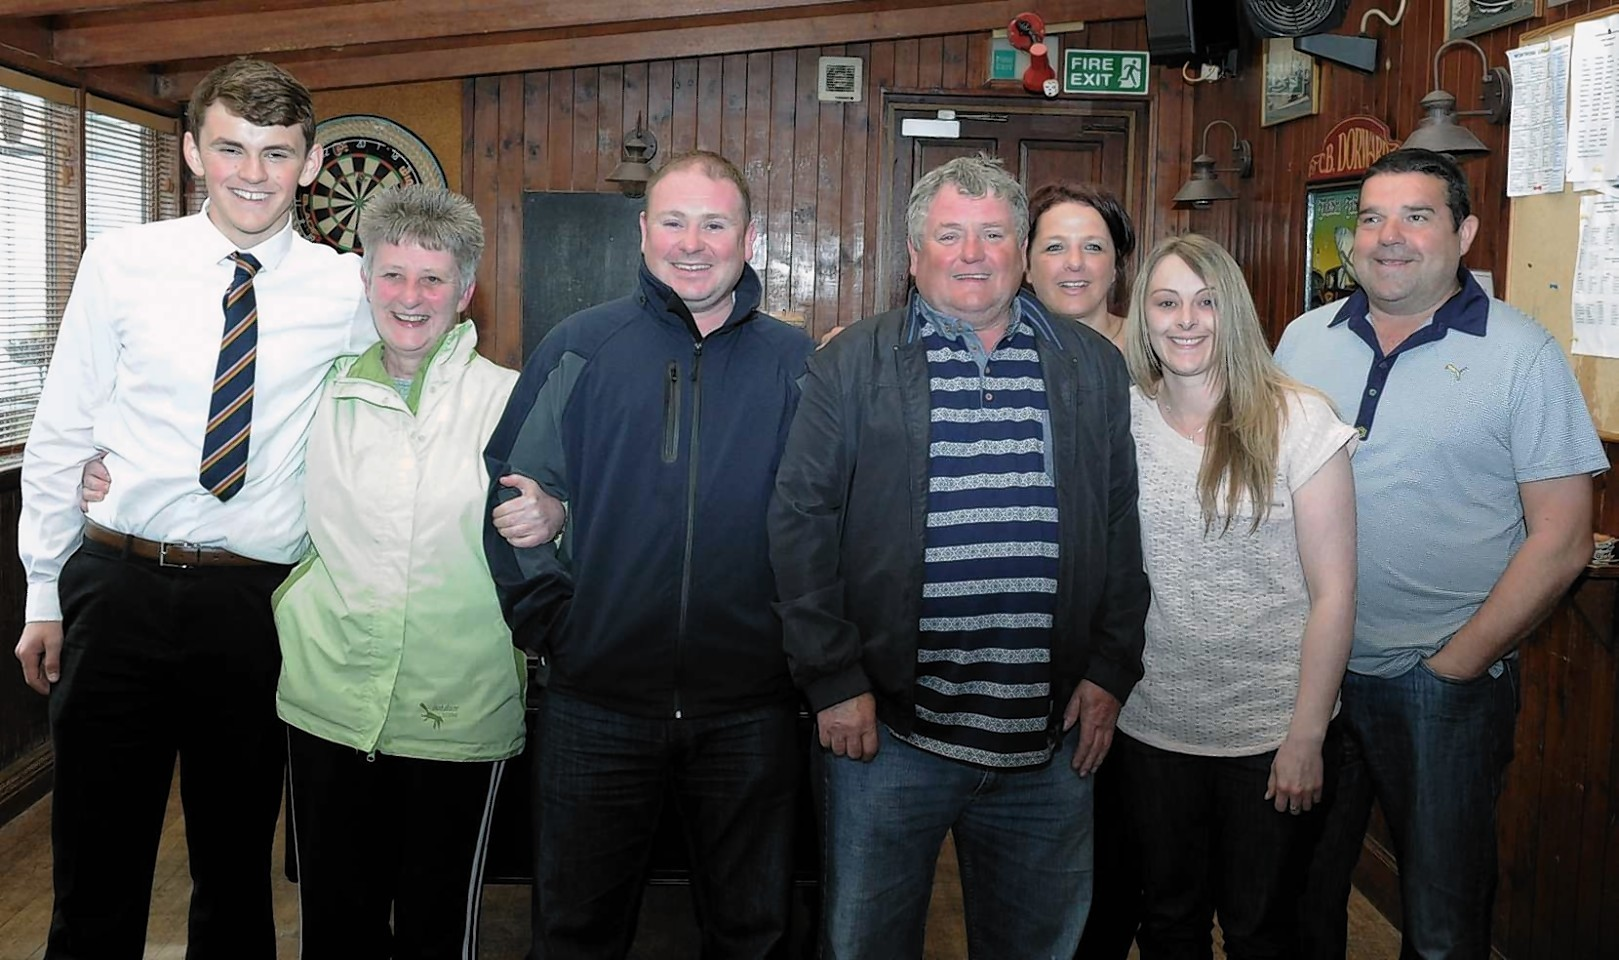 The family and friends of the fishermen found at sea. Pictured in the Harbour Bar, Gourdon are from left: Ritchie Irvine, Marion Irvine, Brian Irvine, David Irvine, Debbie Dorward, Michelle McKenzie and  Bruce Dorward